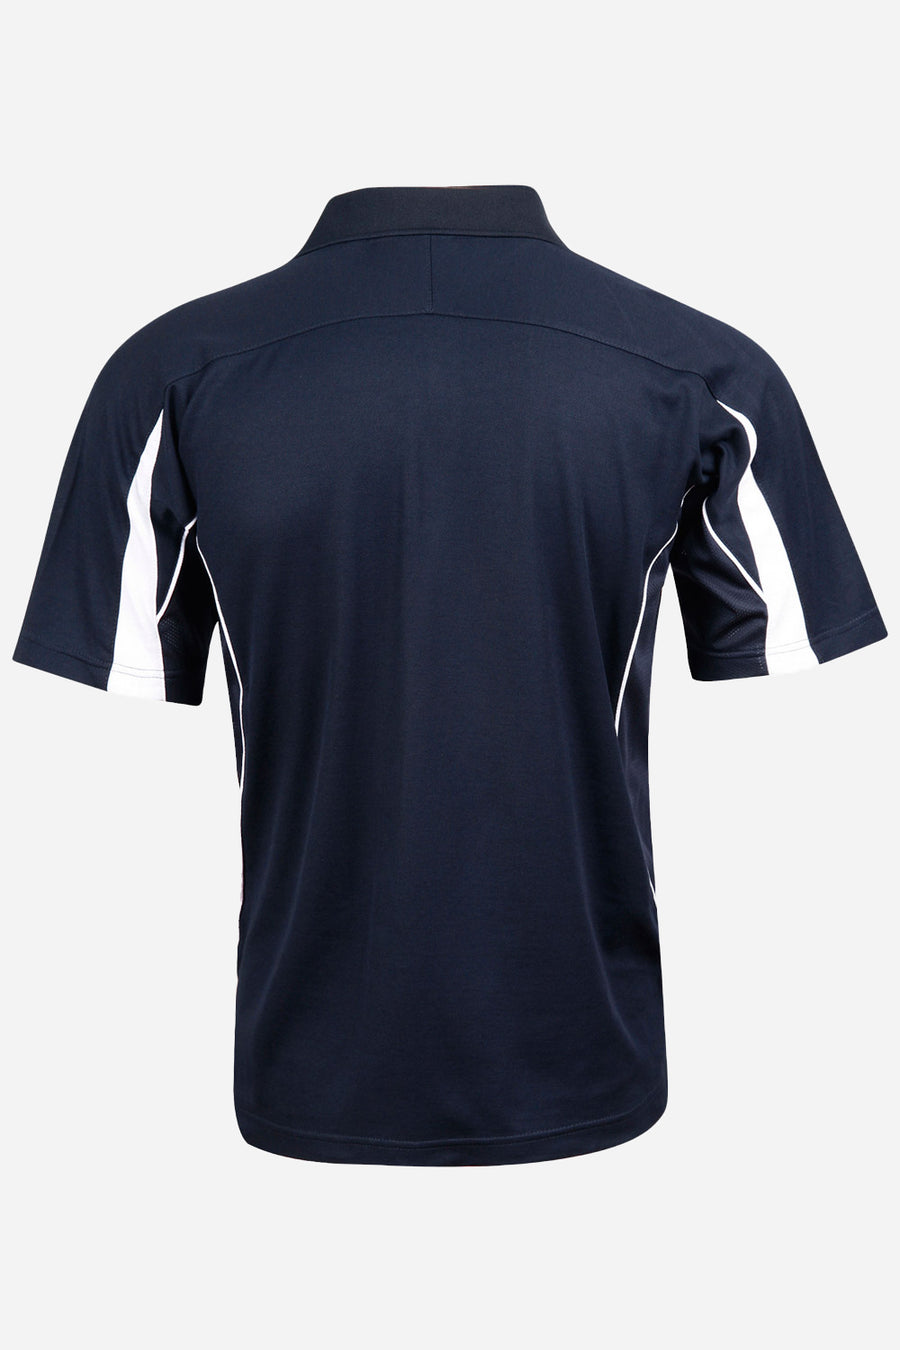 Veterinary  polo navy men's